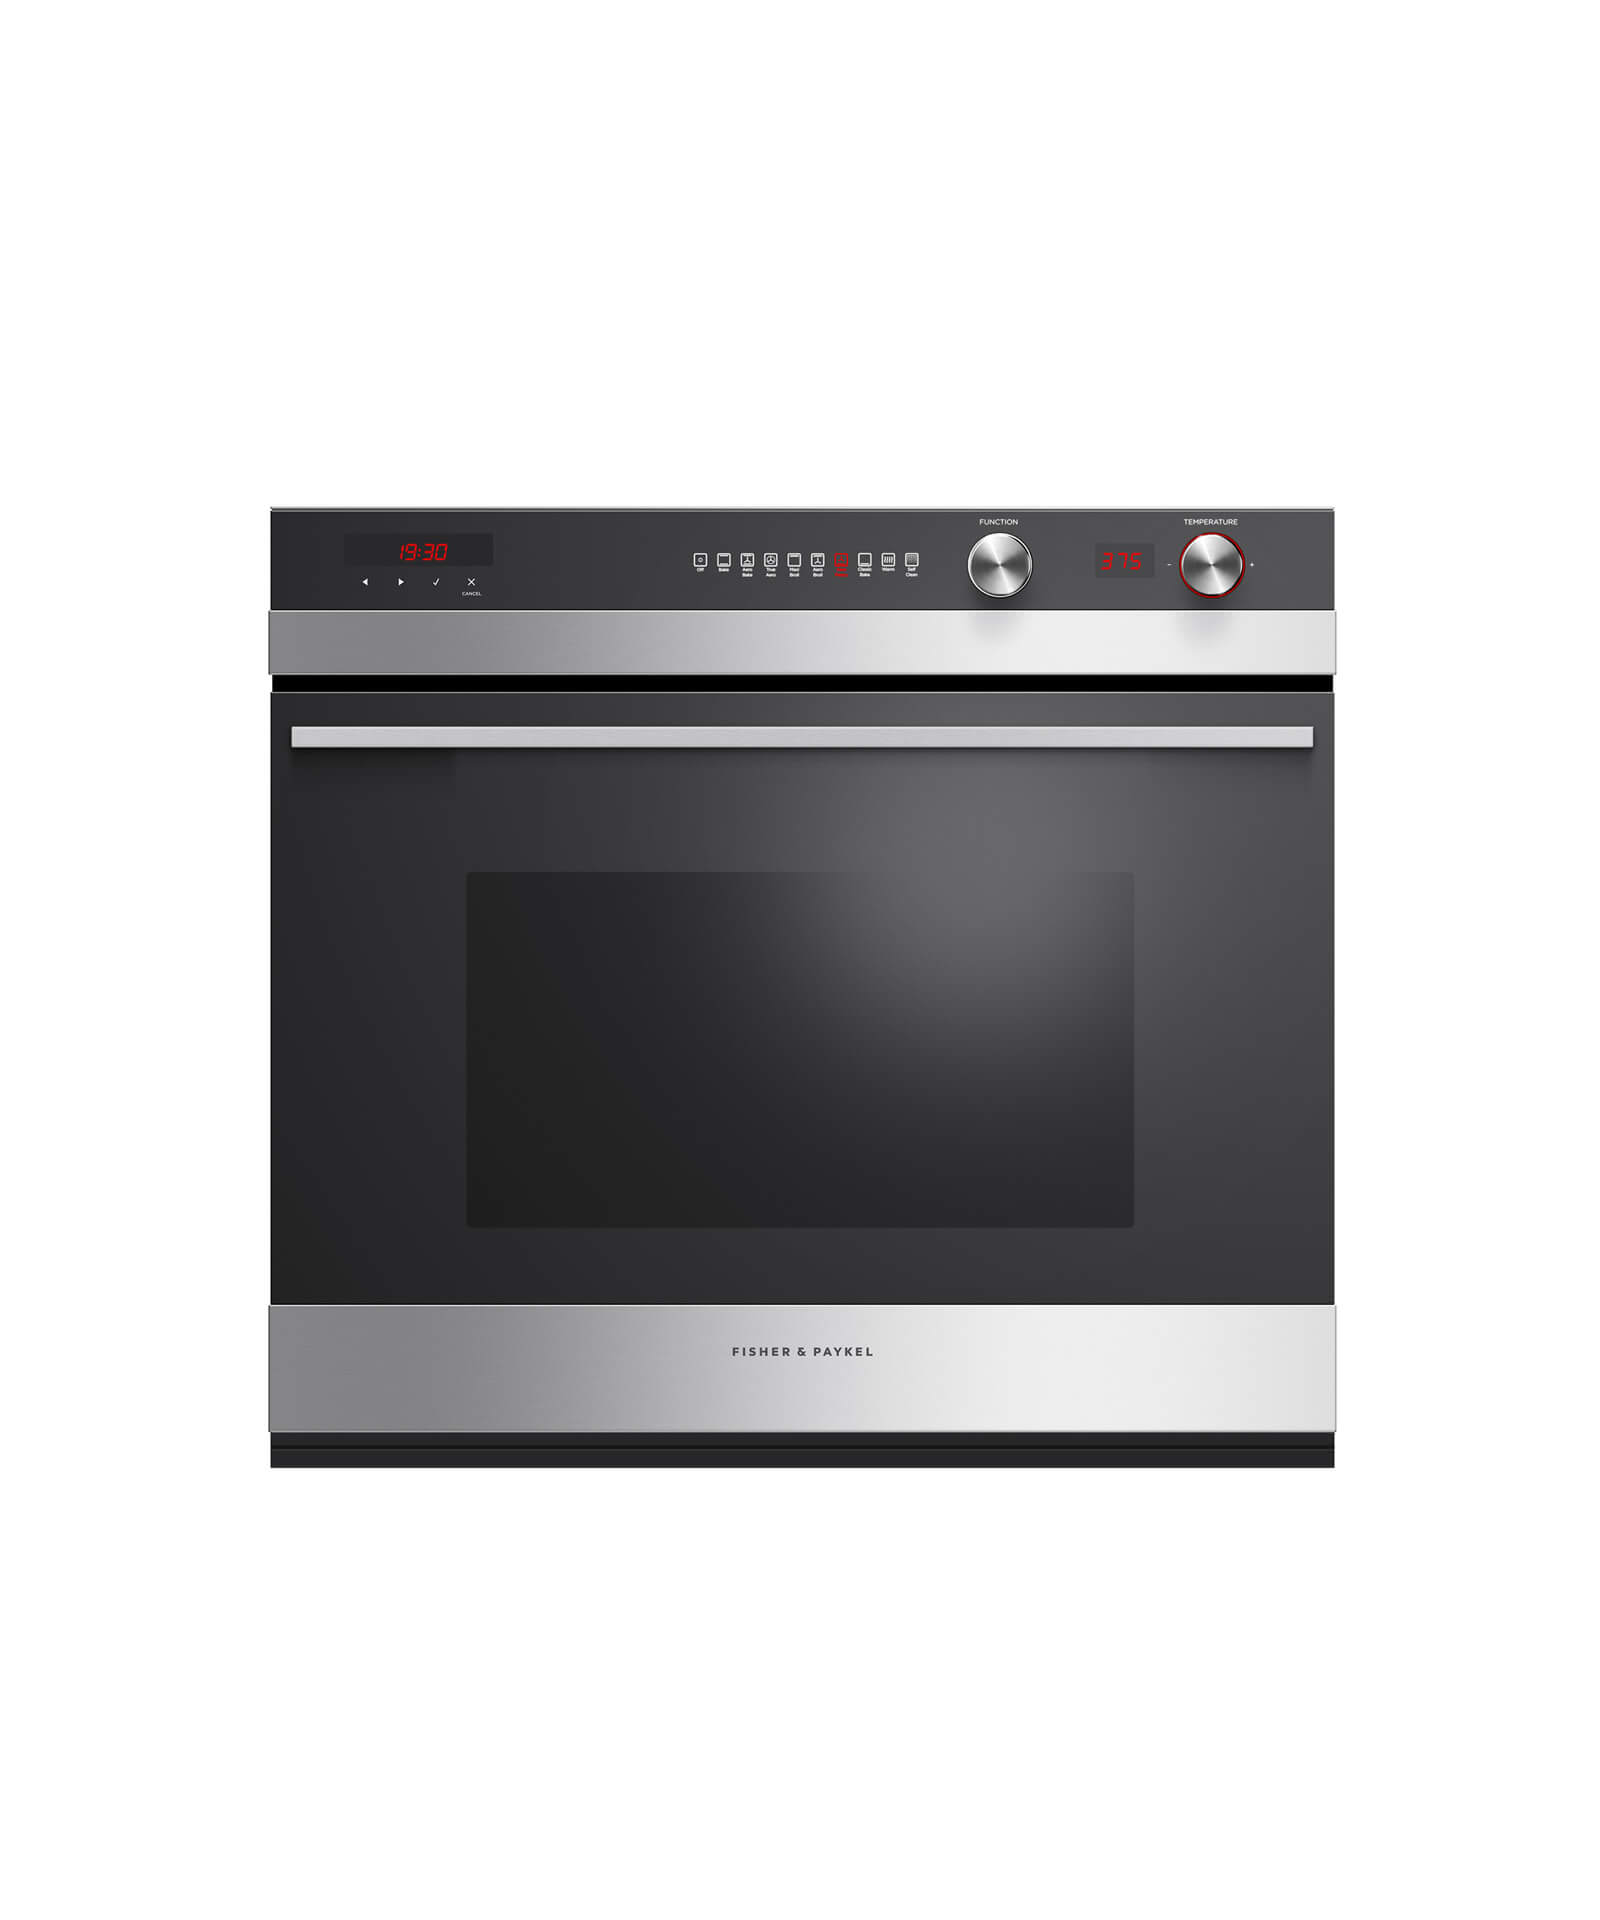 "Fisher and Paykel Built-in Oven, 30"" 4.1 cu ft, 9 Function"